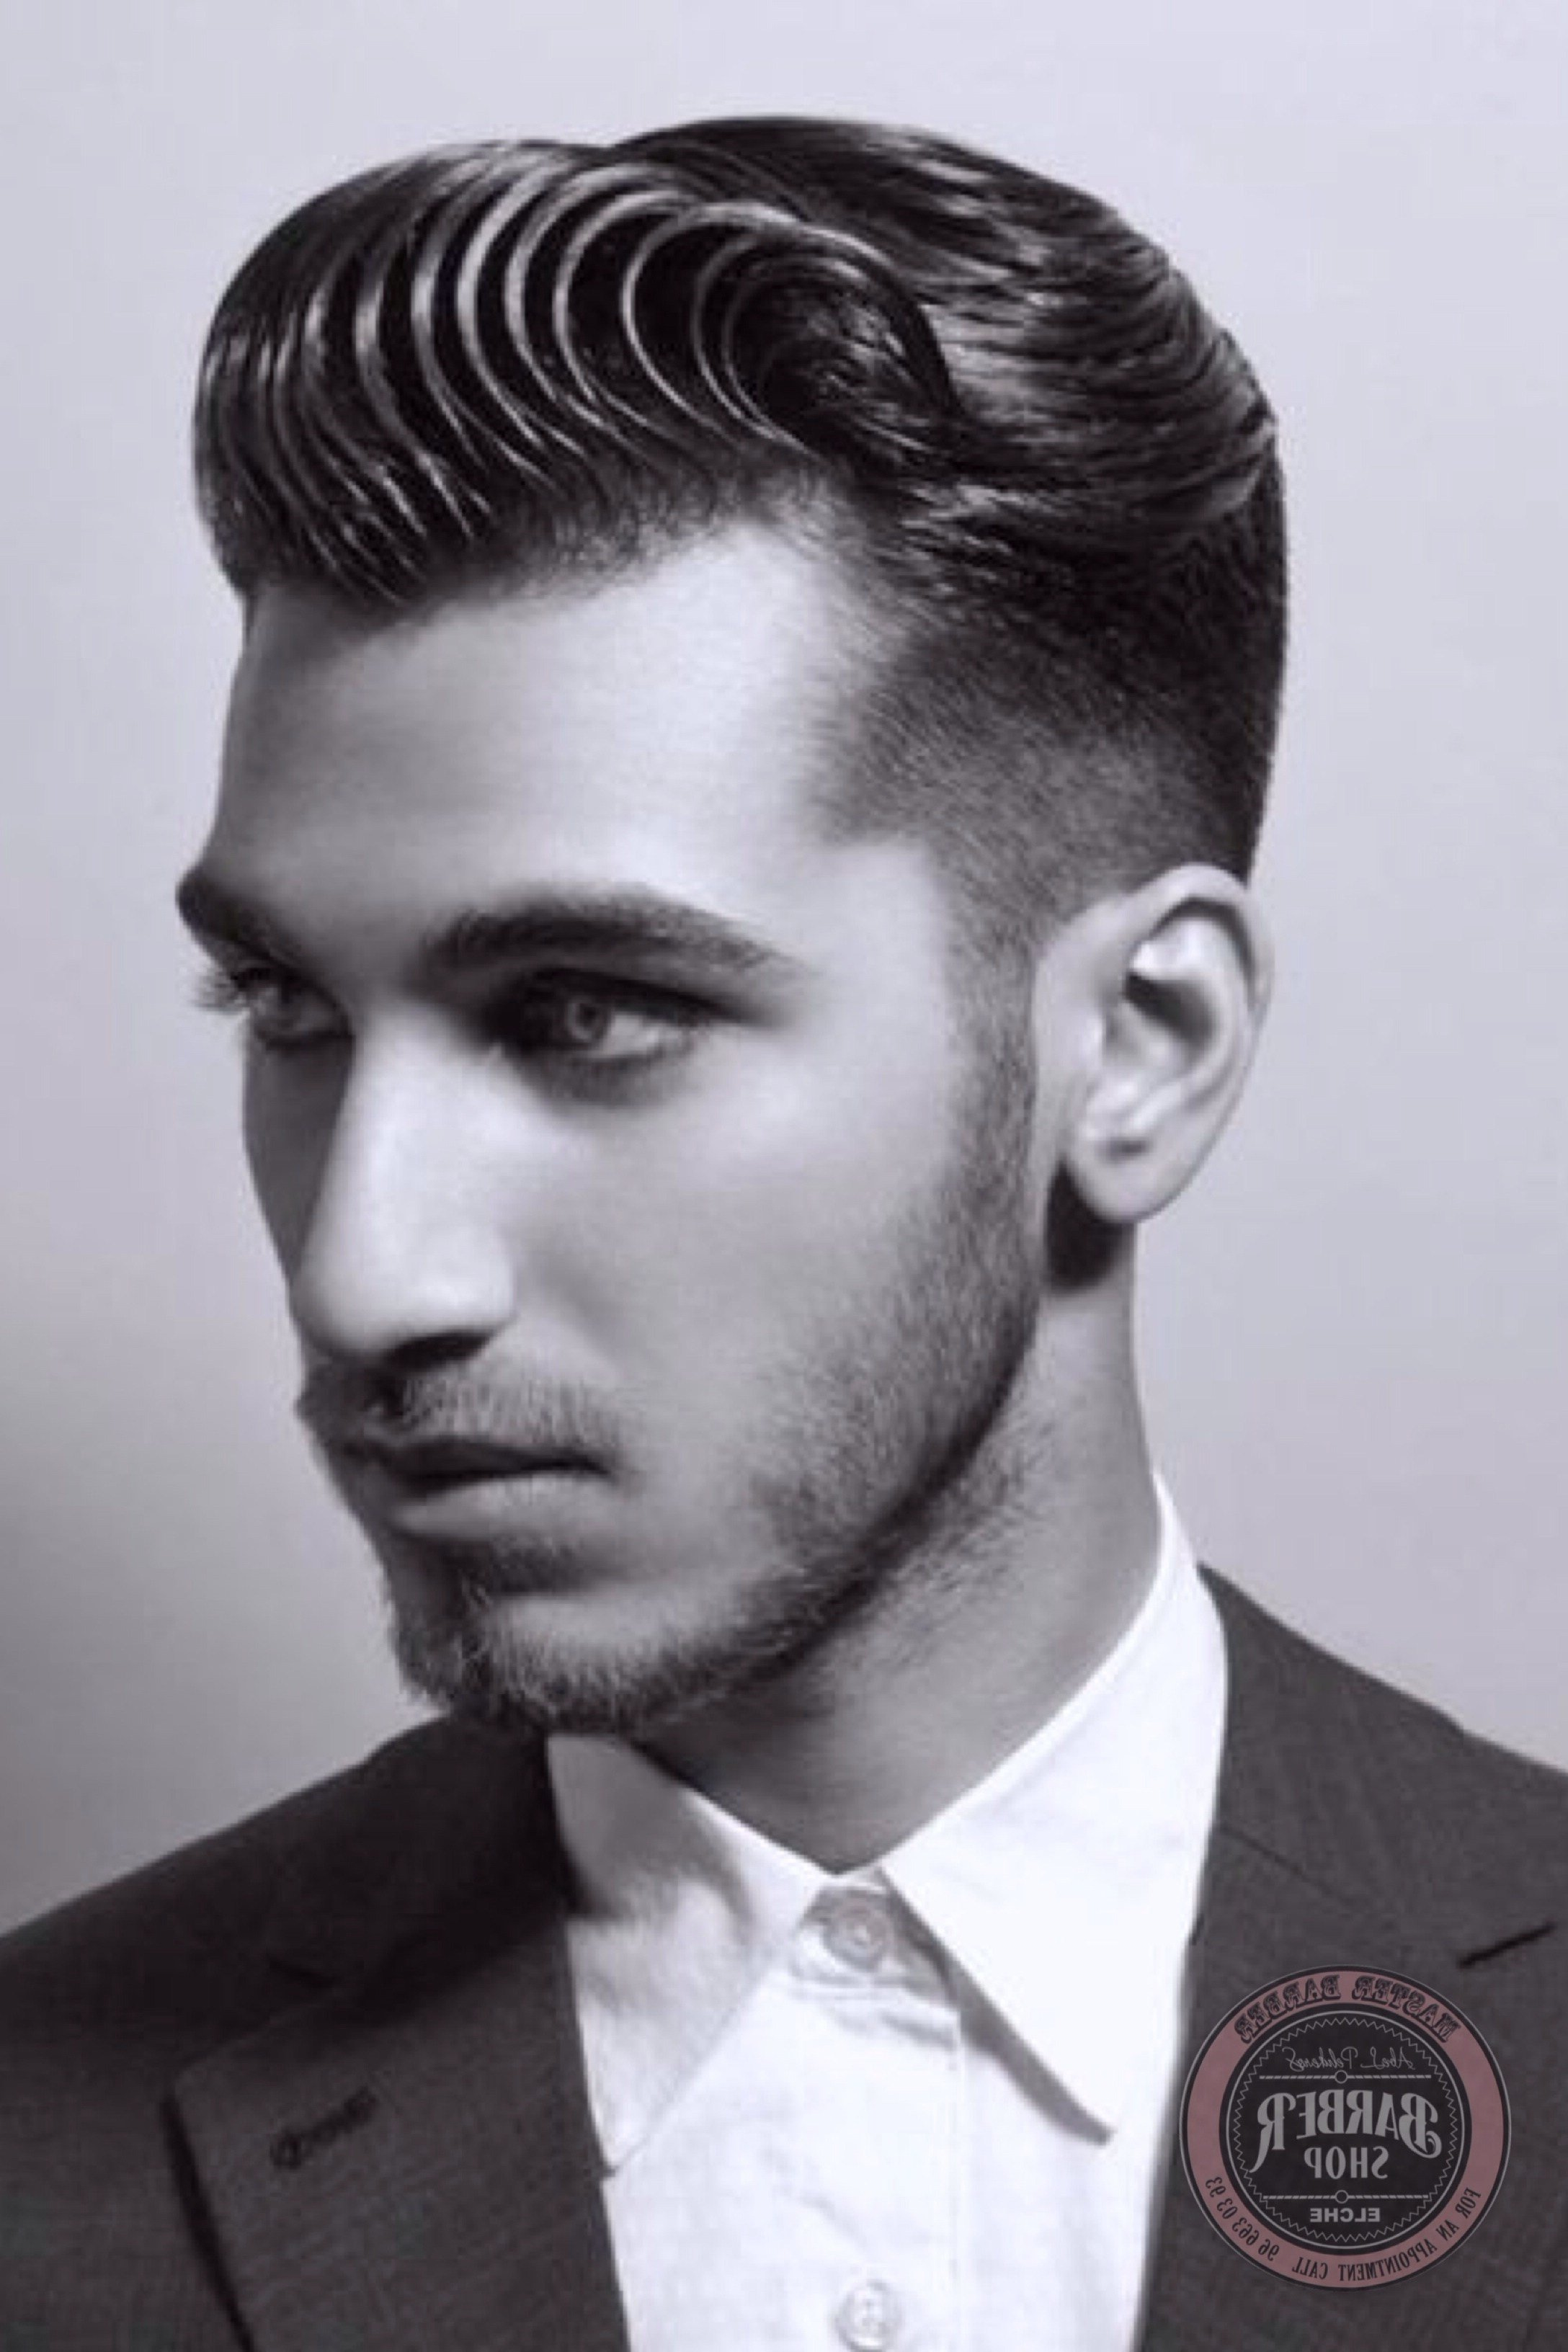 The Best Undercut With Shaggy Quiff Hairstyle Fade Haircut Pictures